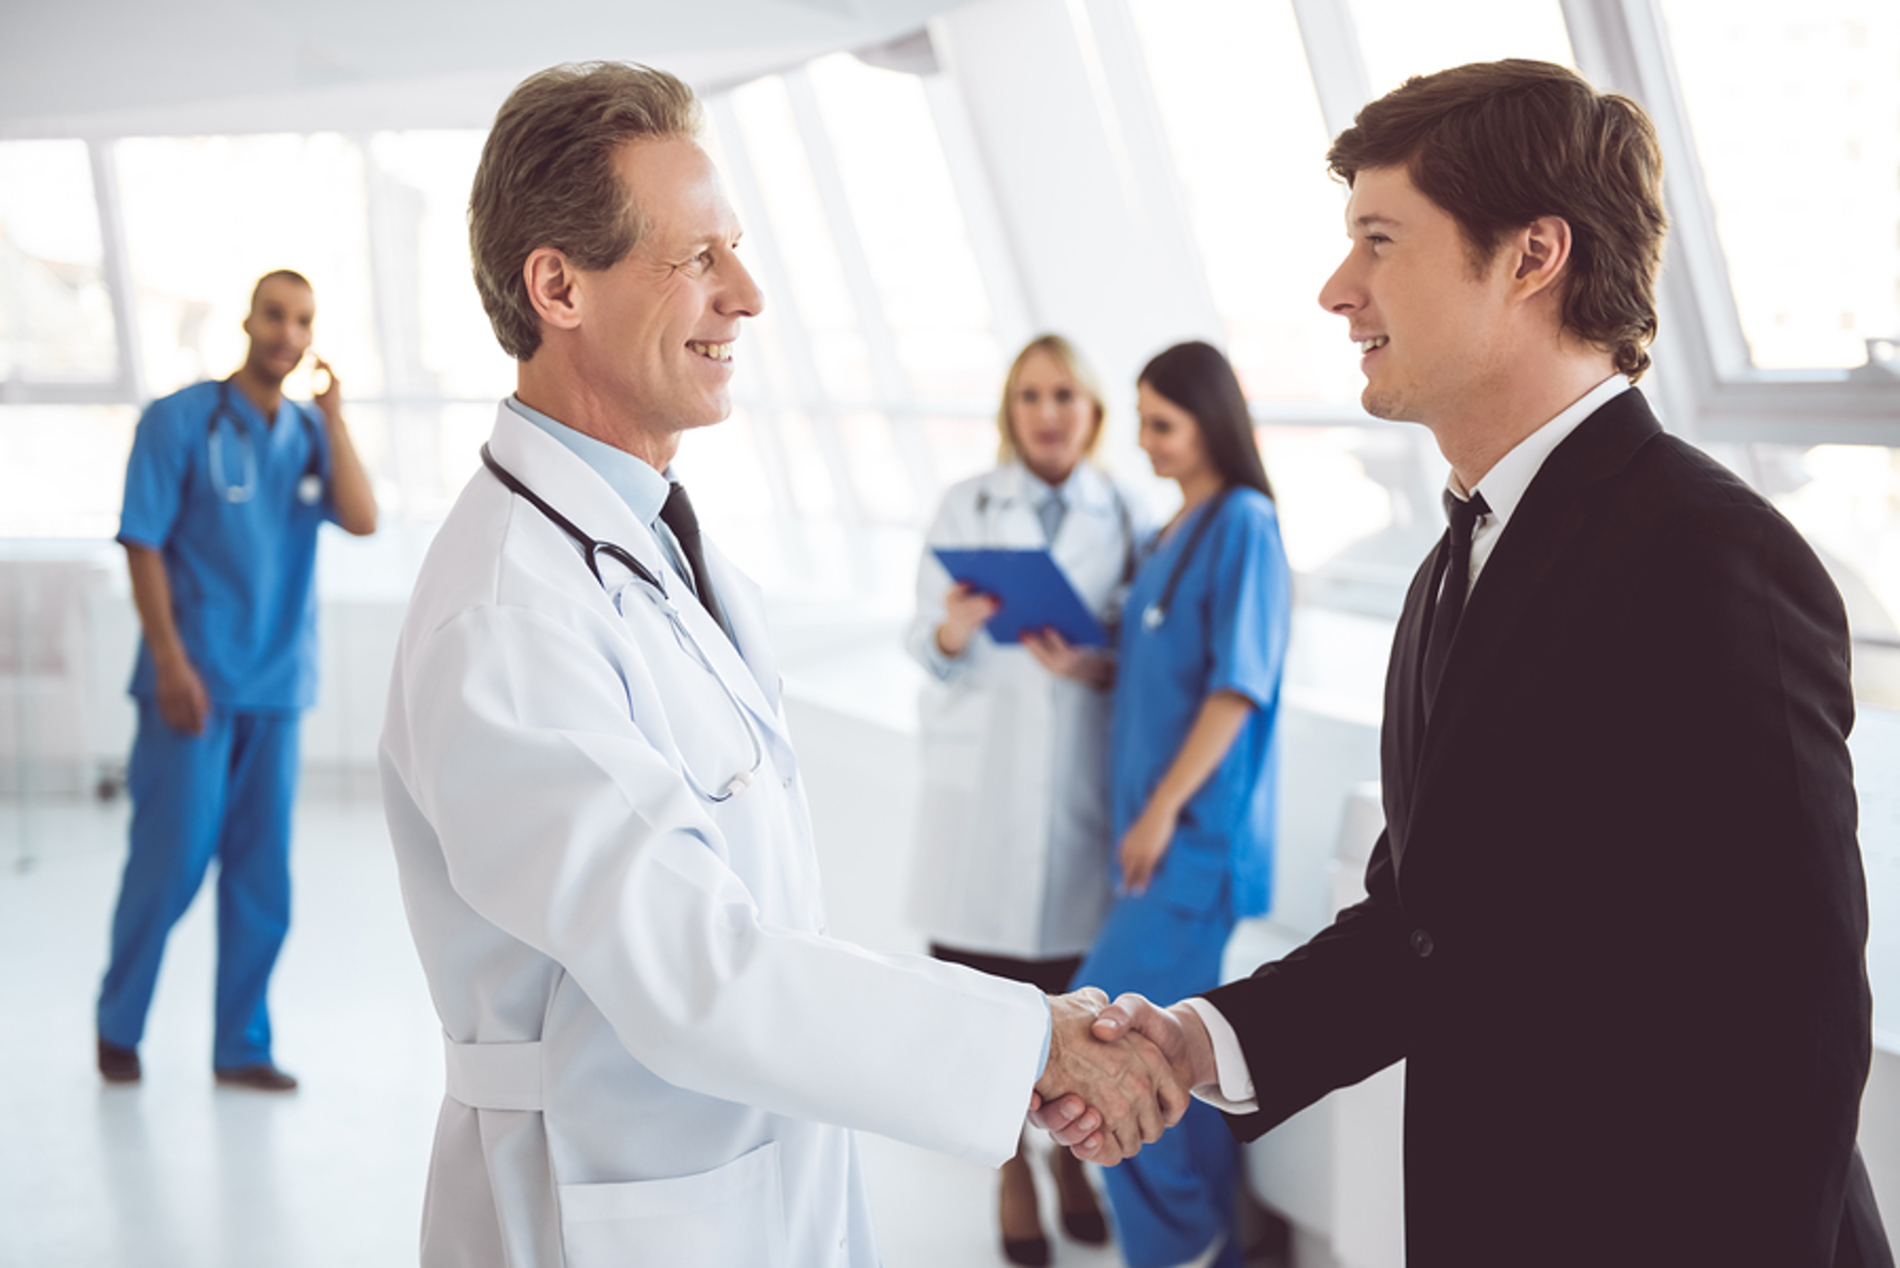 Medical doctor shaking the hand of a patient.